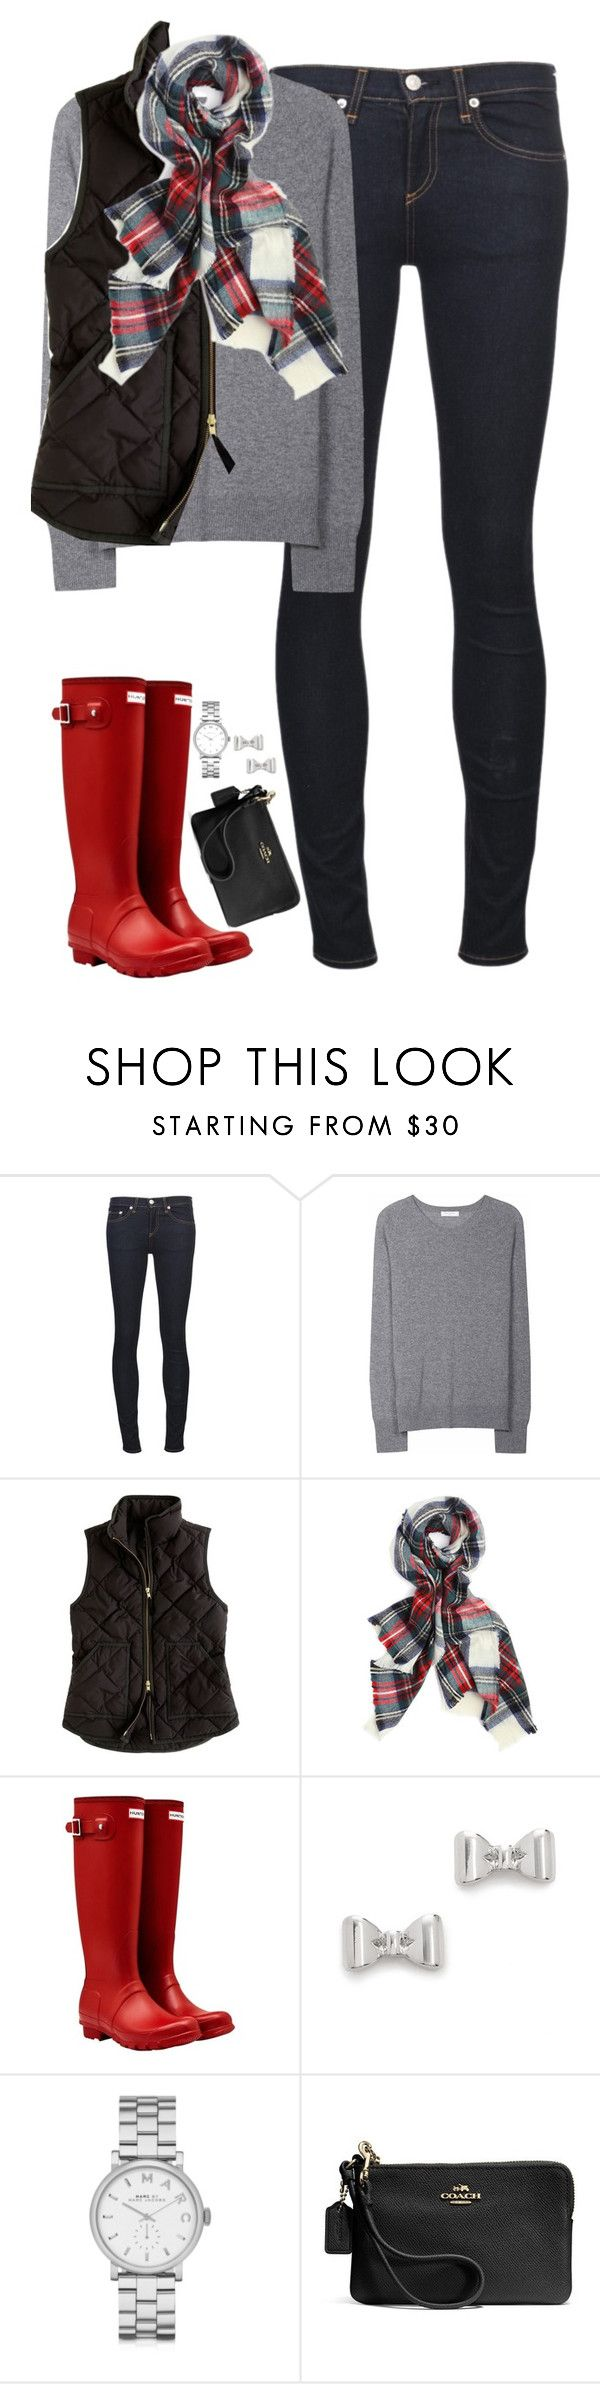 """Black vest, tartan scarf & red Hunter boots"" by steffiestaffie ❤ liked on Polyvore featuring rag & bone/JEAN, Equipment, J.Crew, Hunter, Marc by Marc Jacobs, Coach, women's clothing, women, female and woman"